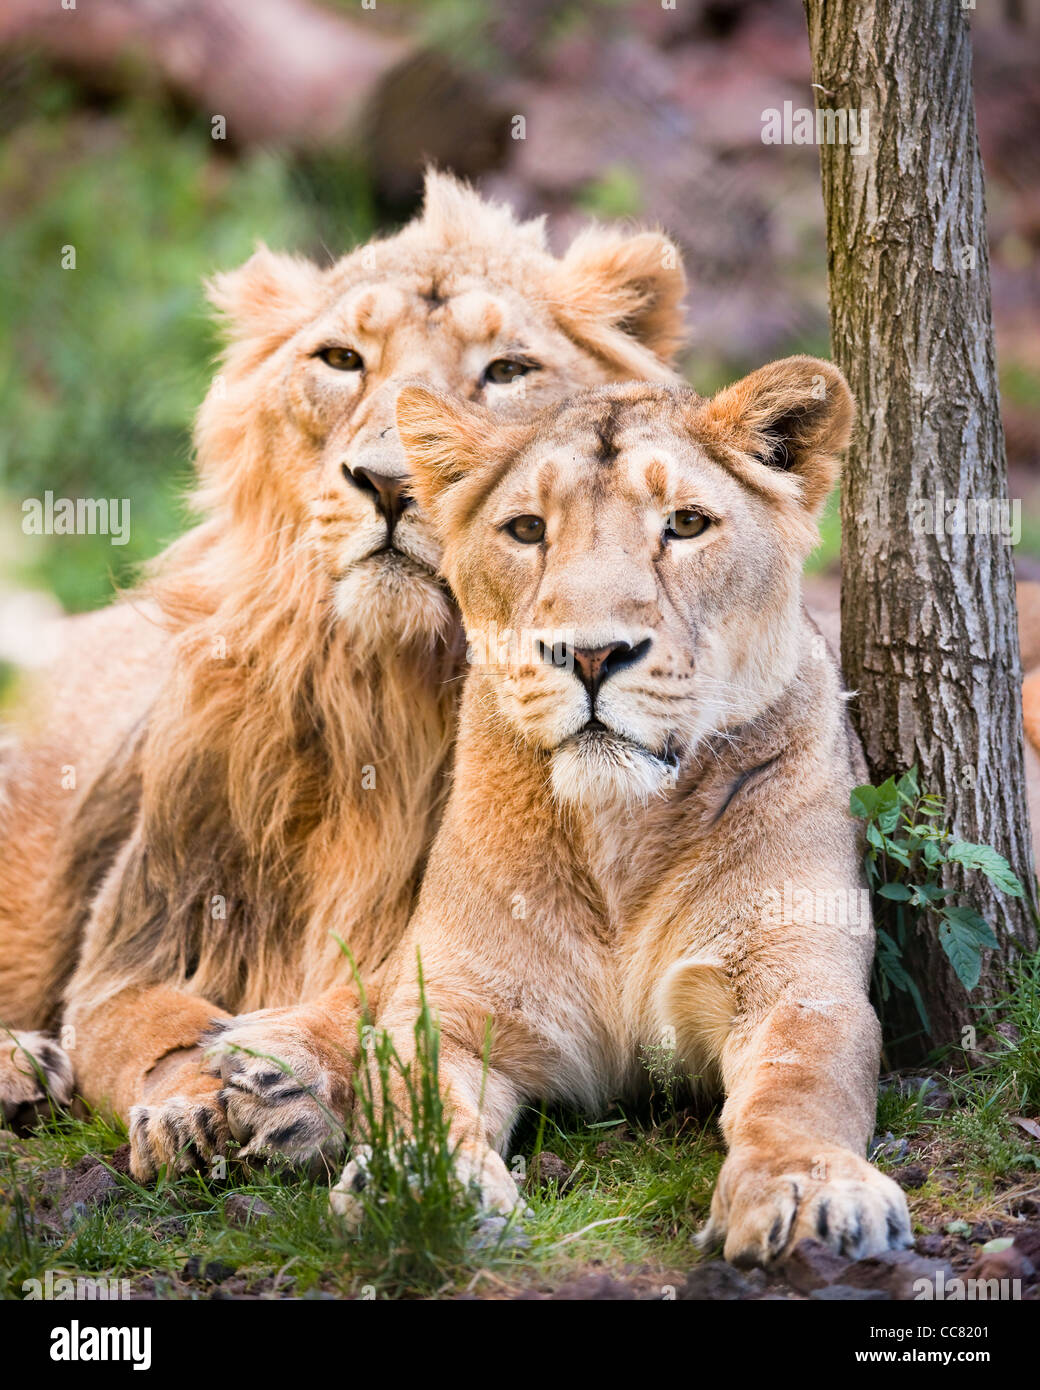 lion coulpe resting near a tree - Stock Image